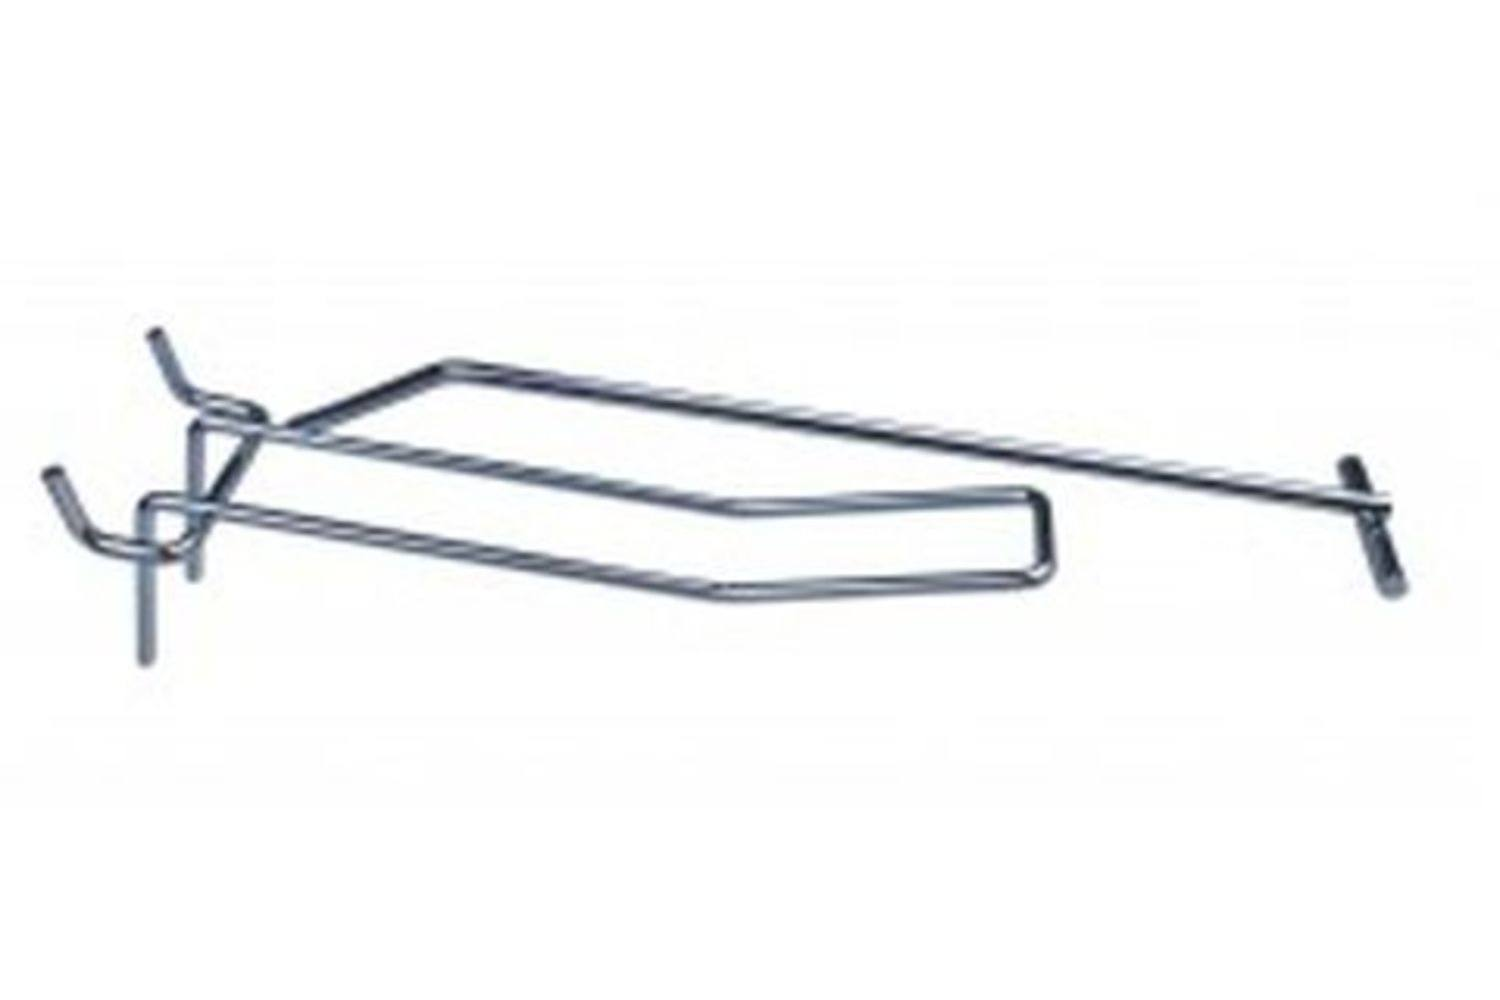 Double hook, l 200mm, Perfo 1